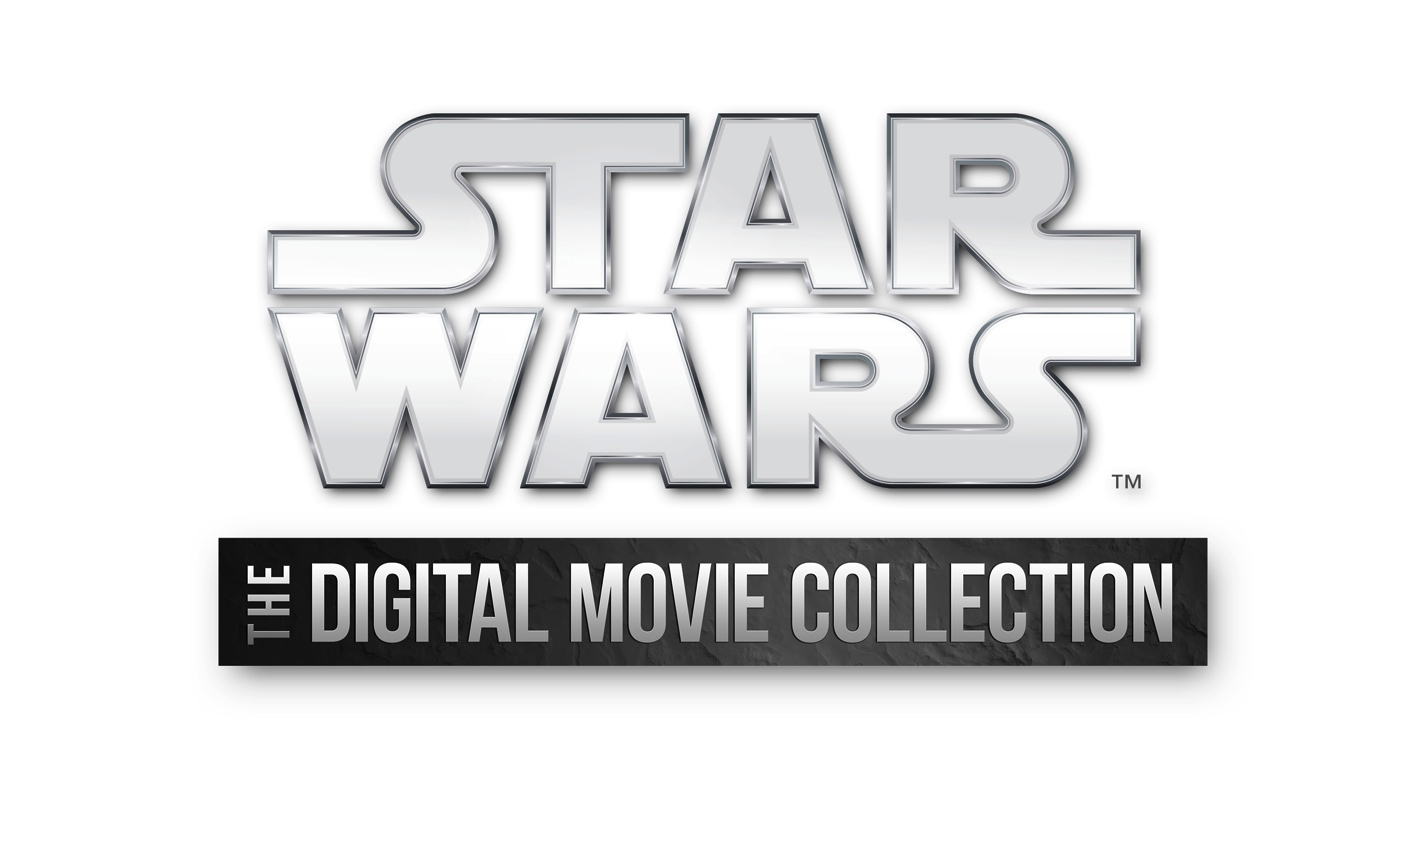 The Star Wars Digital Movie Collection. For the first time ever, all six epic films in the Saga, from The Phantom Menace to Return of the Jedi, will be available on Digital HD throughout the galaxy – or at least here on Earth – globally beginning Friday, April 10.